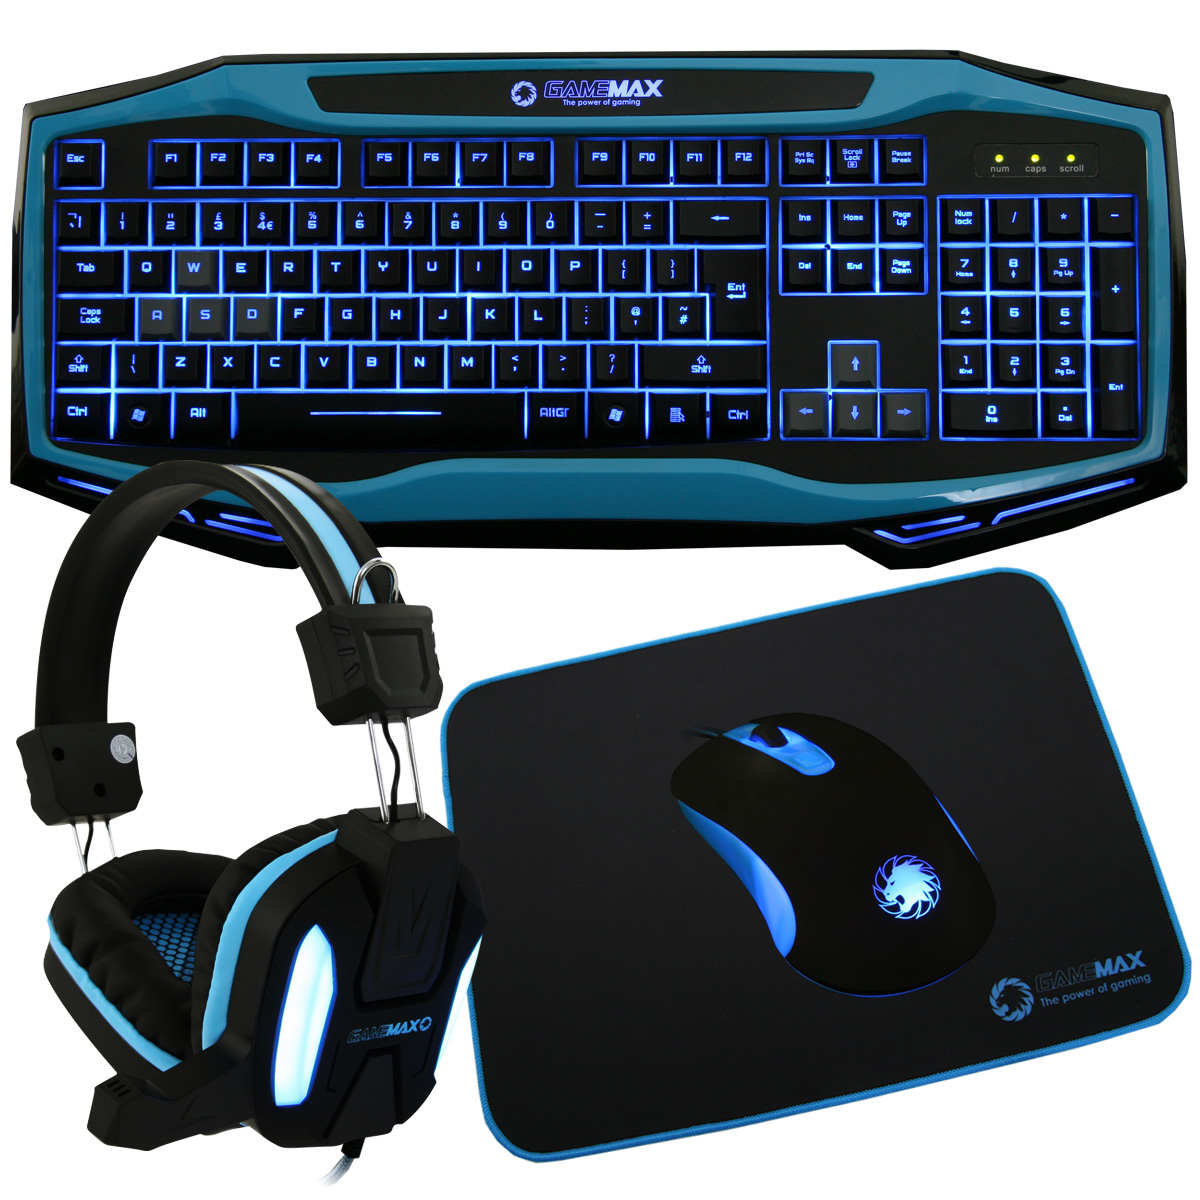 GAMEMAX Raptor Keyboard Mouse Headset Mouse Mat Kit In Blue